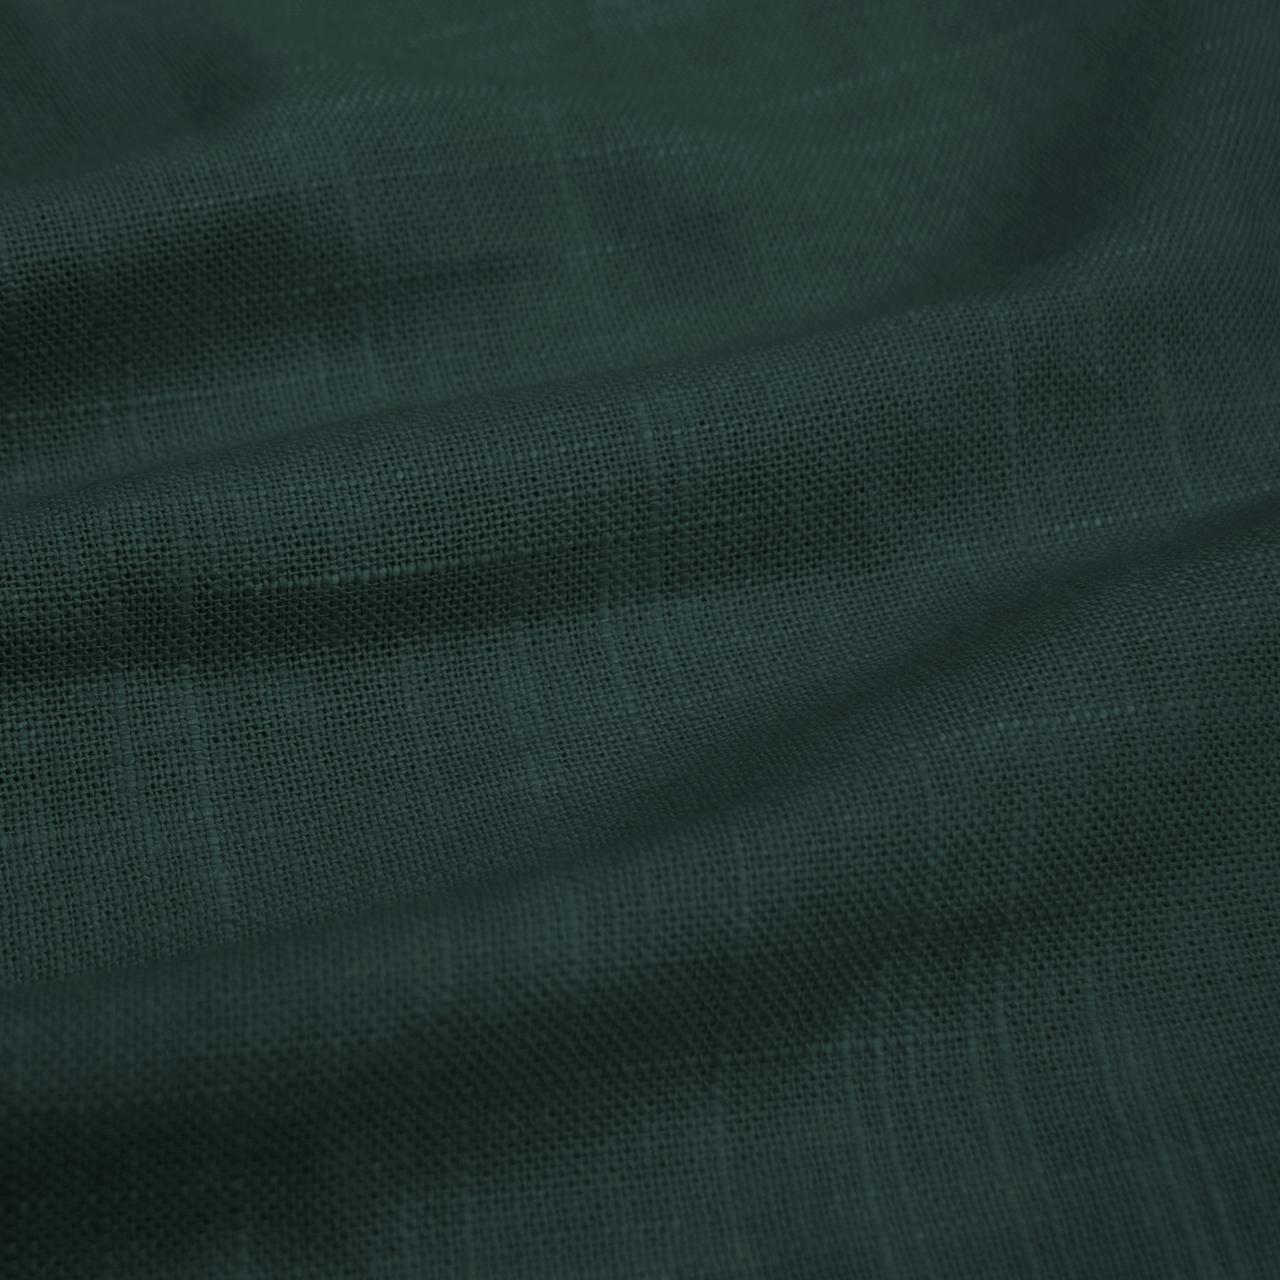 Williams Bed, Full, Linen Conifer Green, Pewter Nailheads